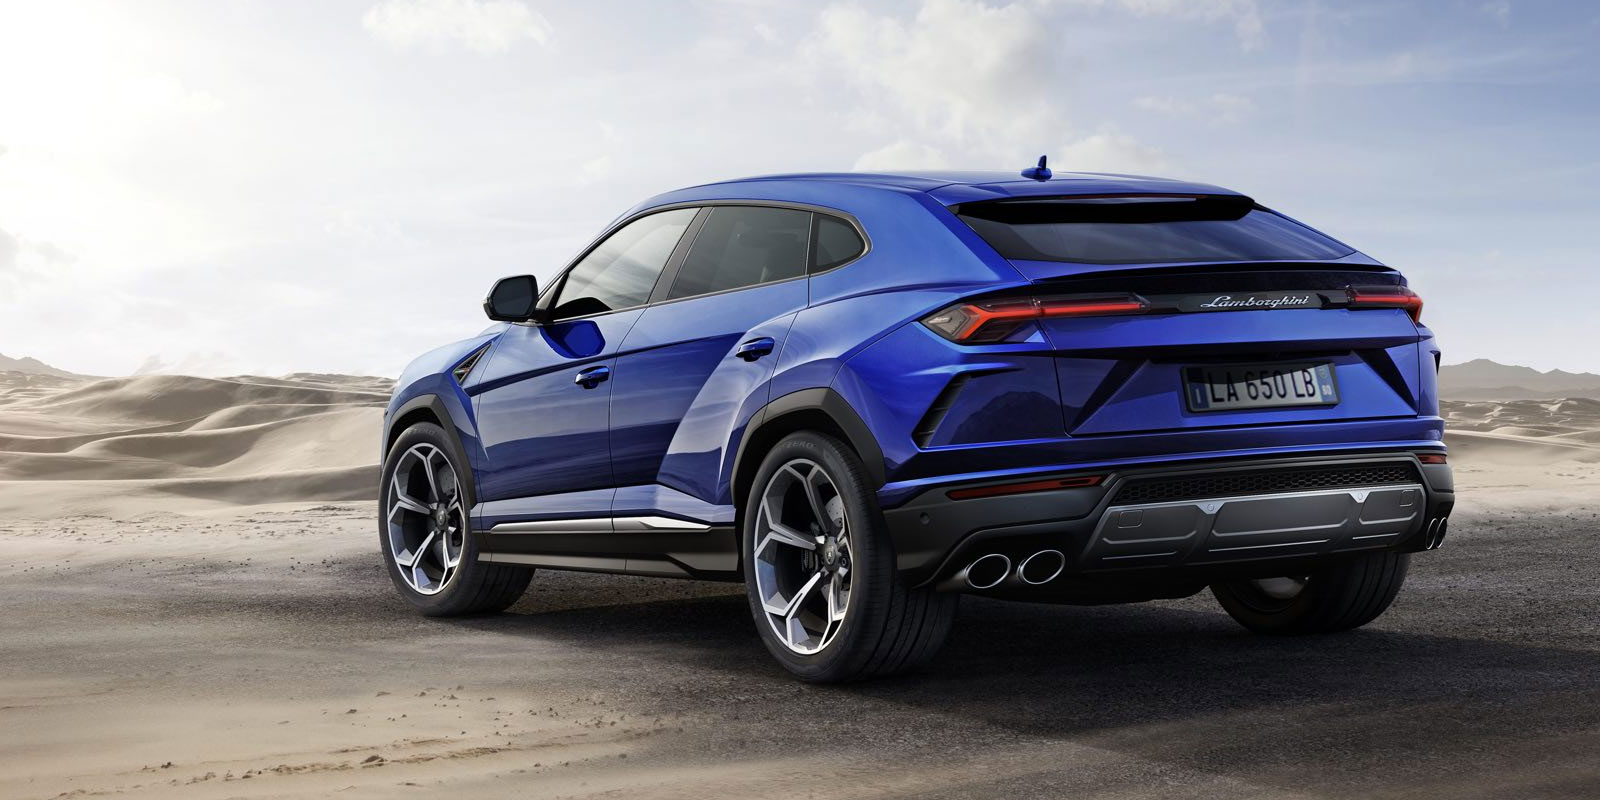 Lamborghini Urus - The World's First Super Sport Utility Vehicle image 10